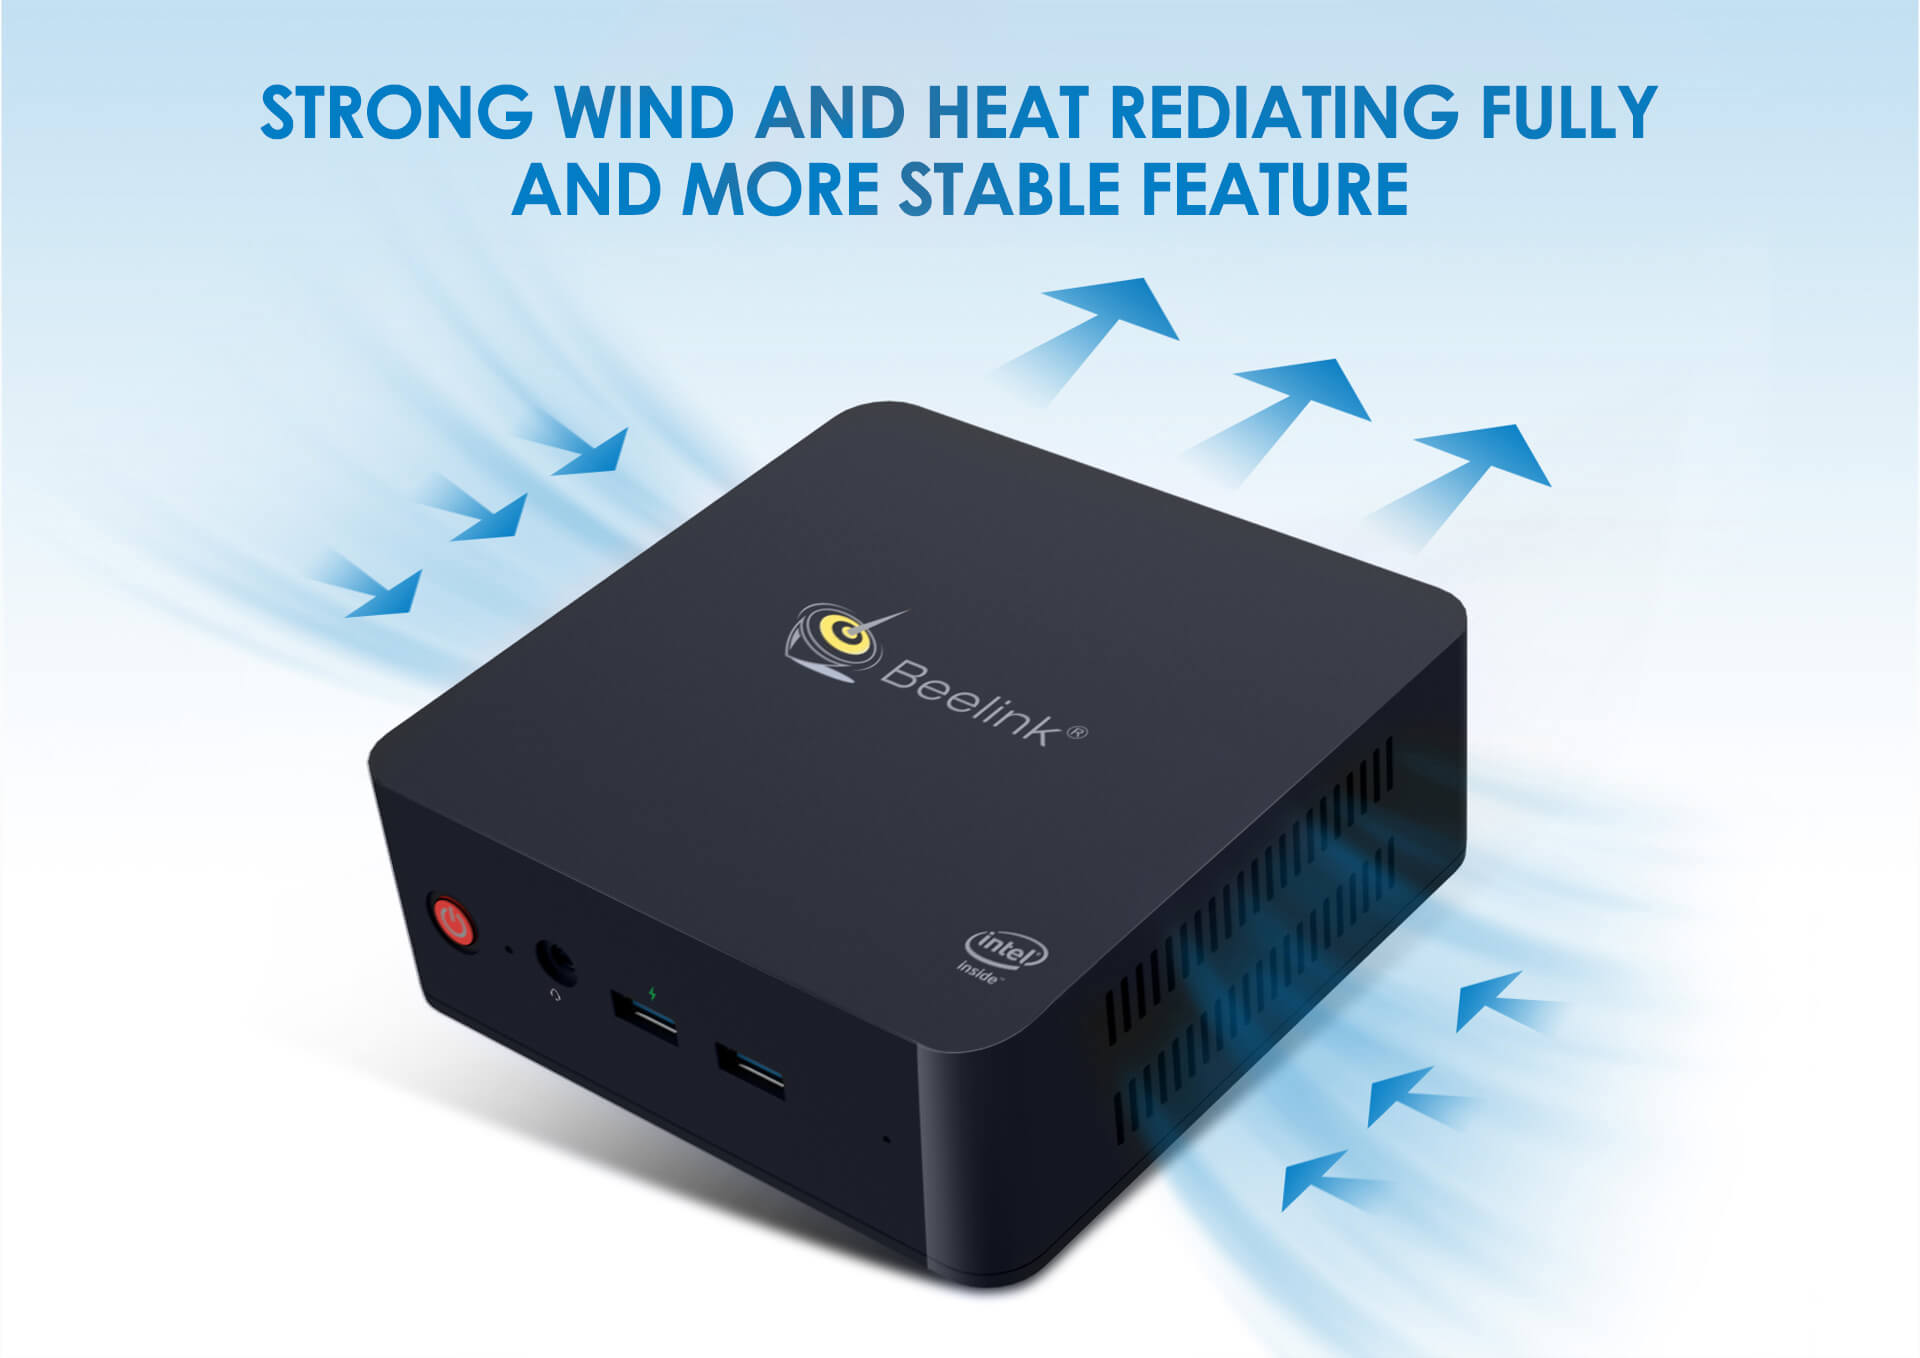 Beelink-L55-mini-PC-cooling